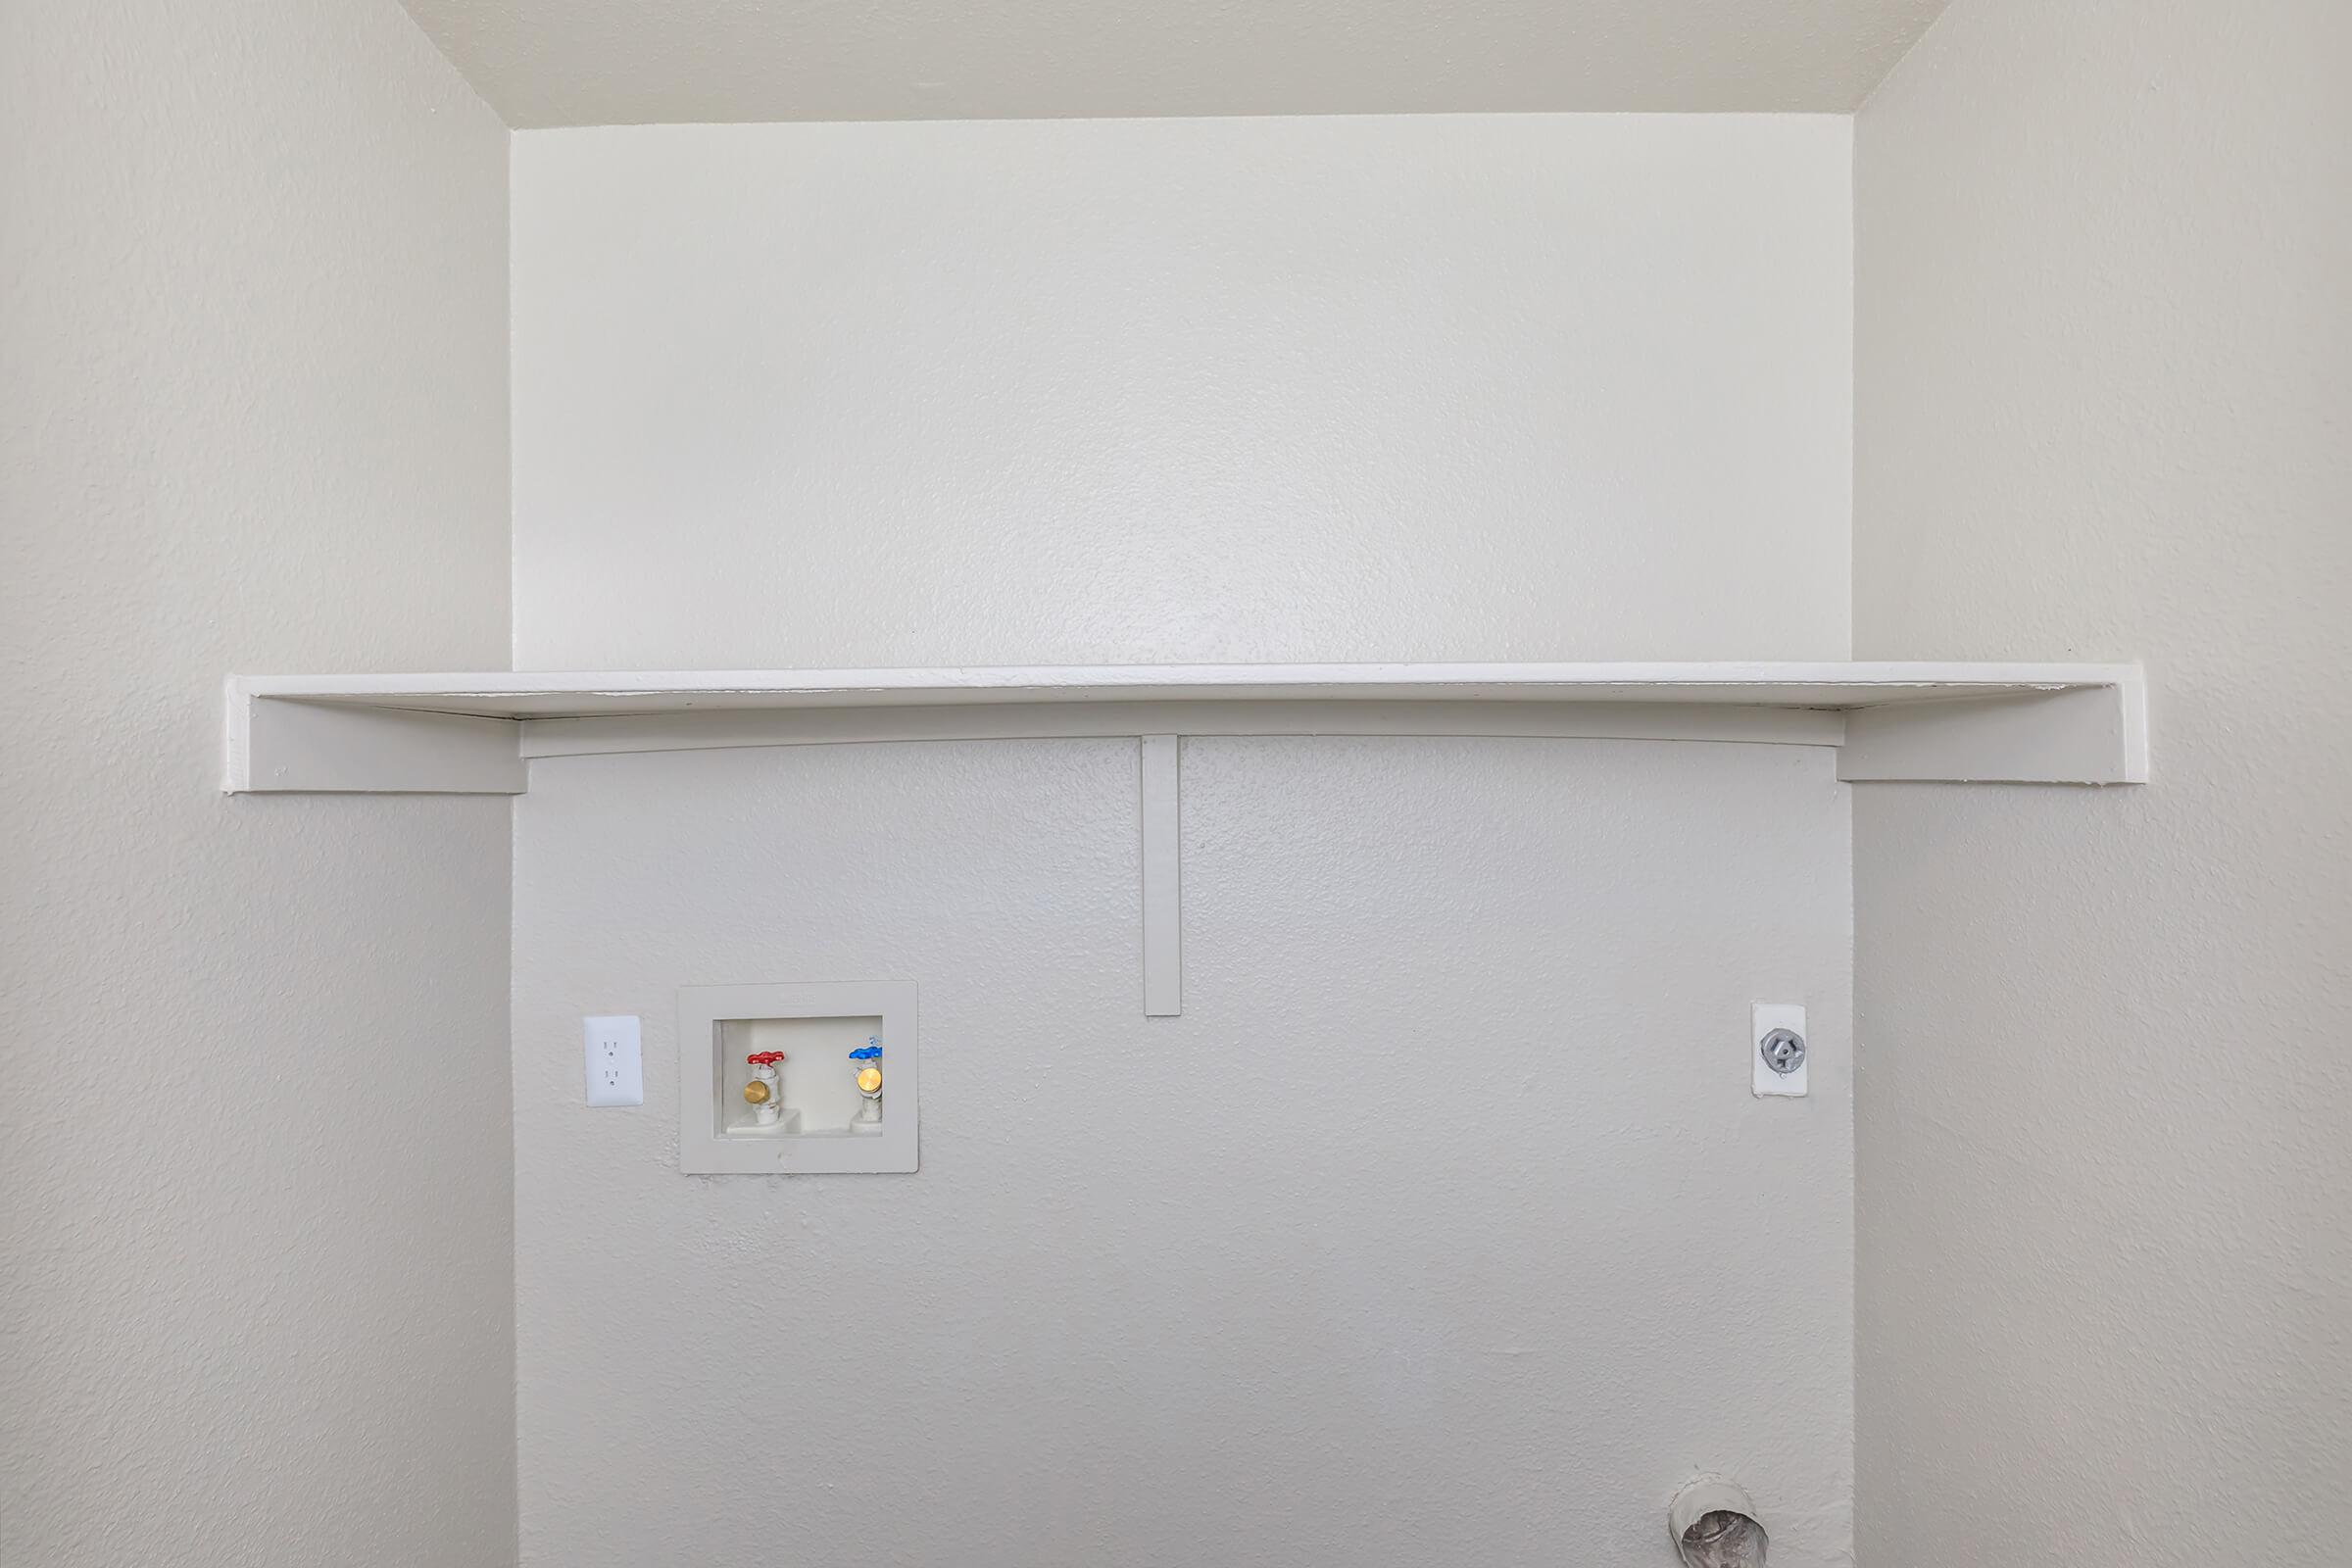 a white refrigerator freezer sitting inside of a building